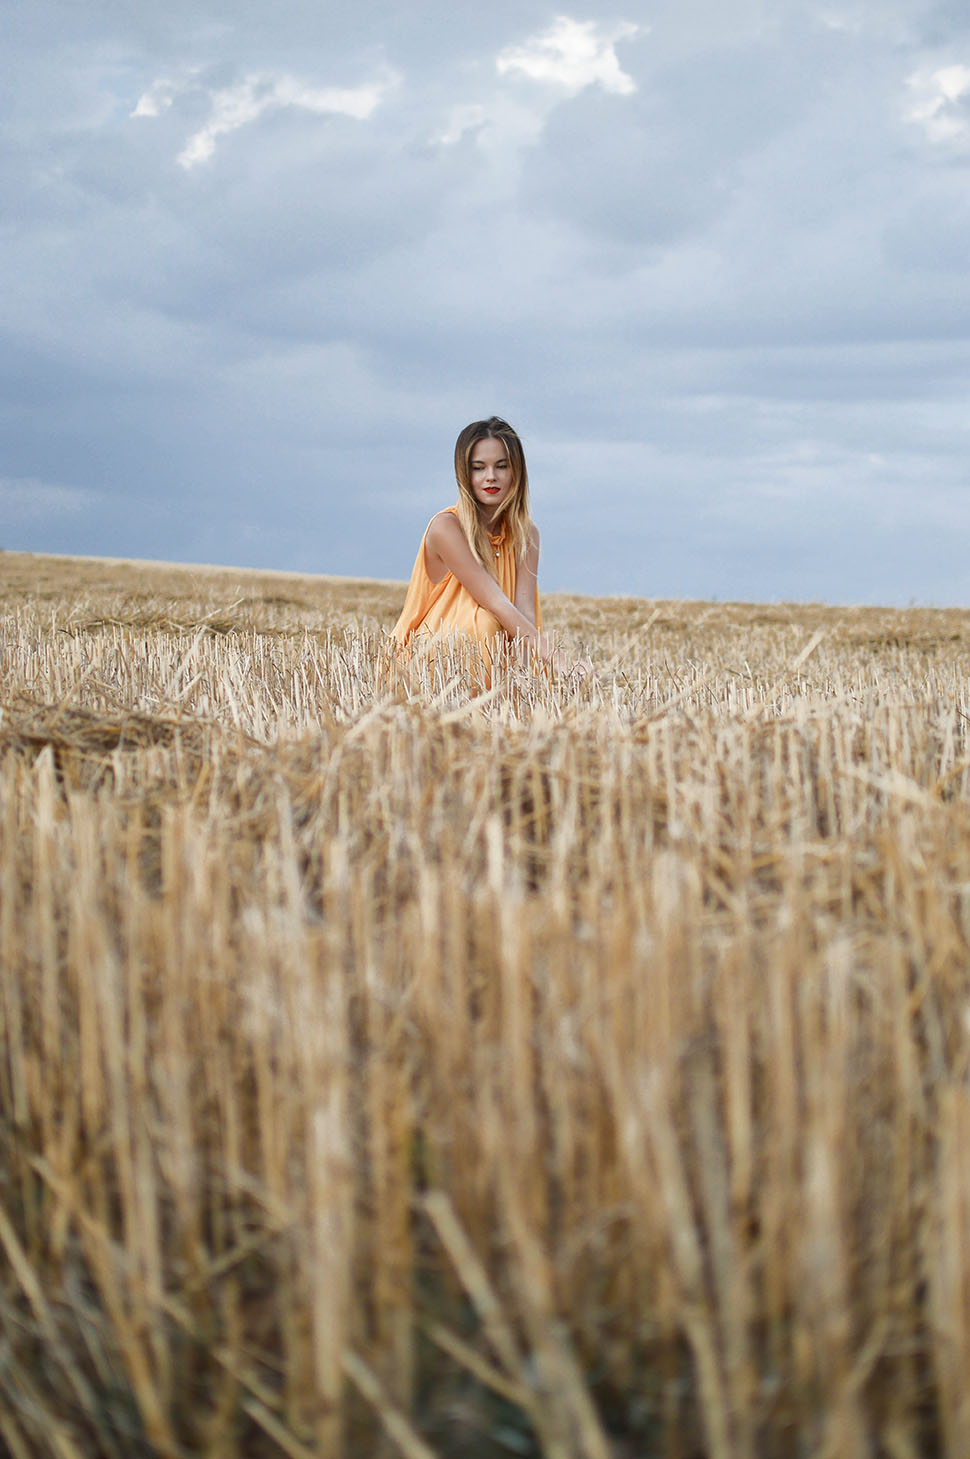 Wheaten August by Tamara Bellis